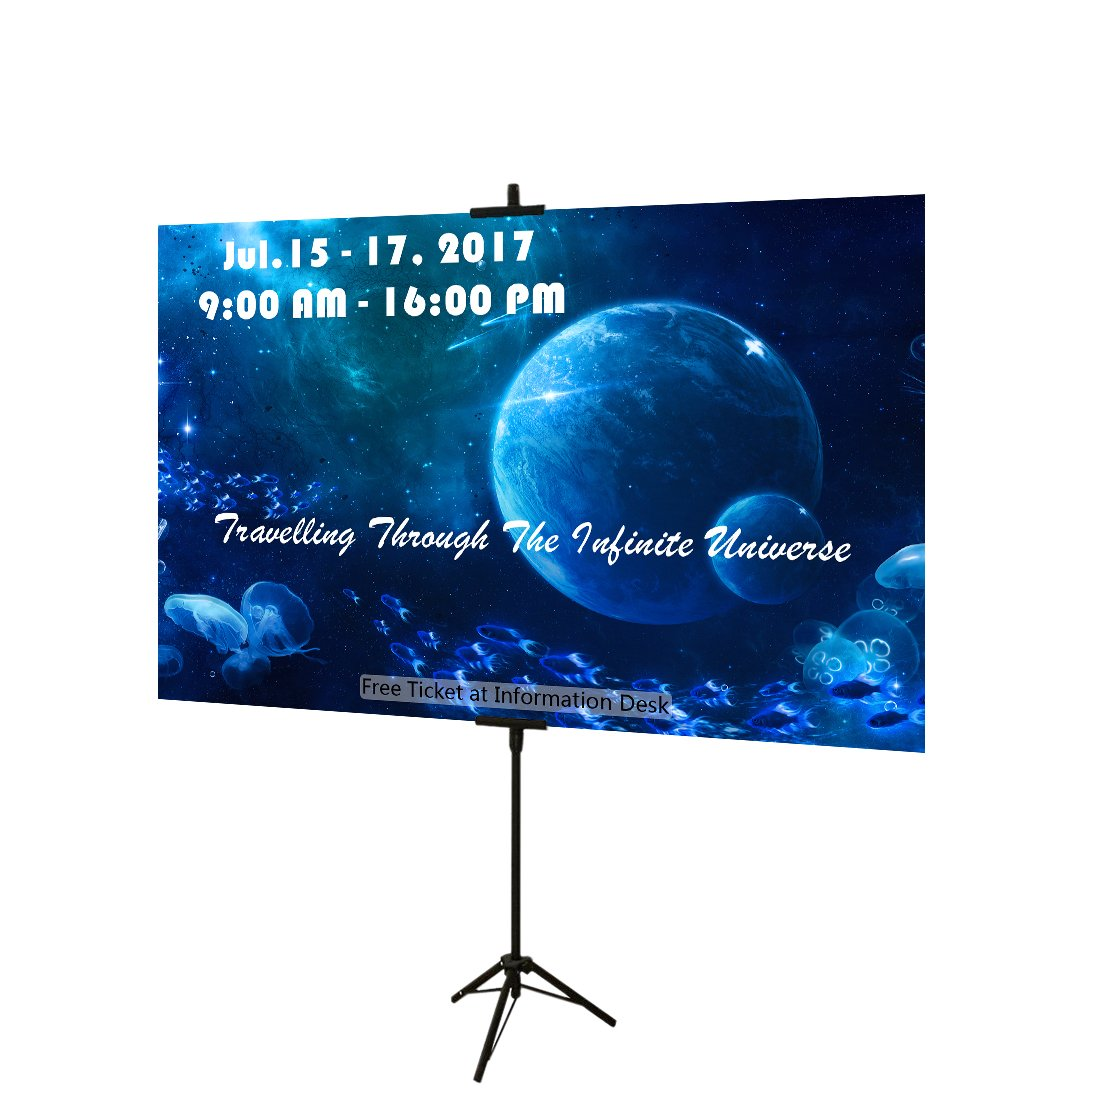 Haitian Telescopic Steel Poster Stand - Displaying Free Size Foam Board Sign Height up to 72 Inches, Double Sided Display Banner Stand Viewable from Both Directions